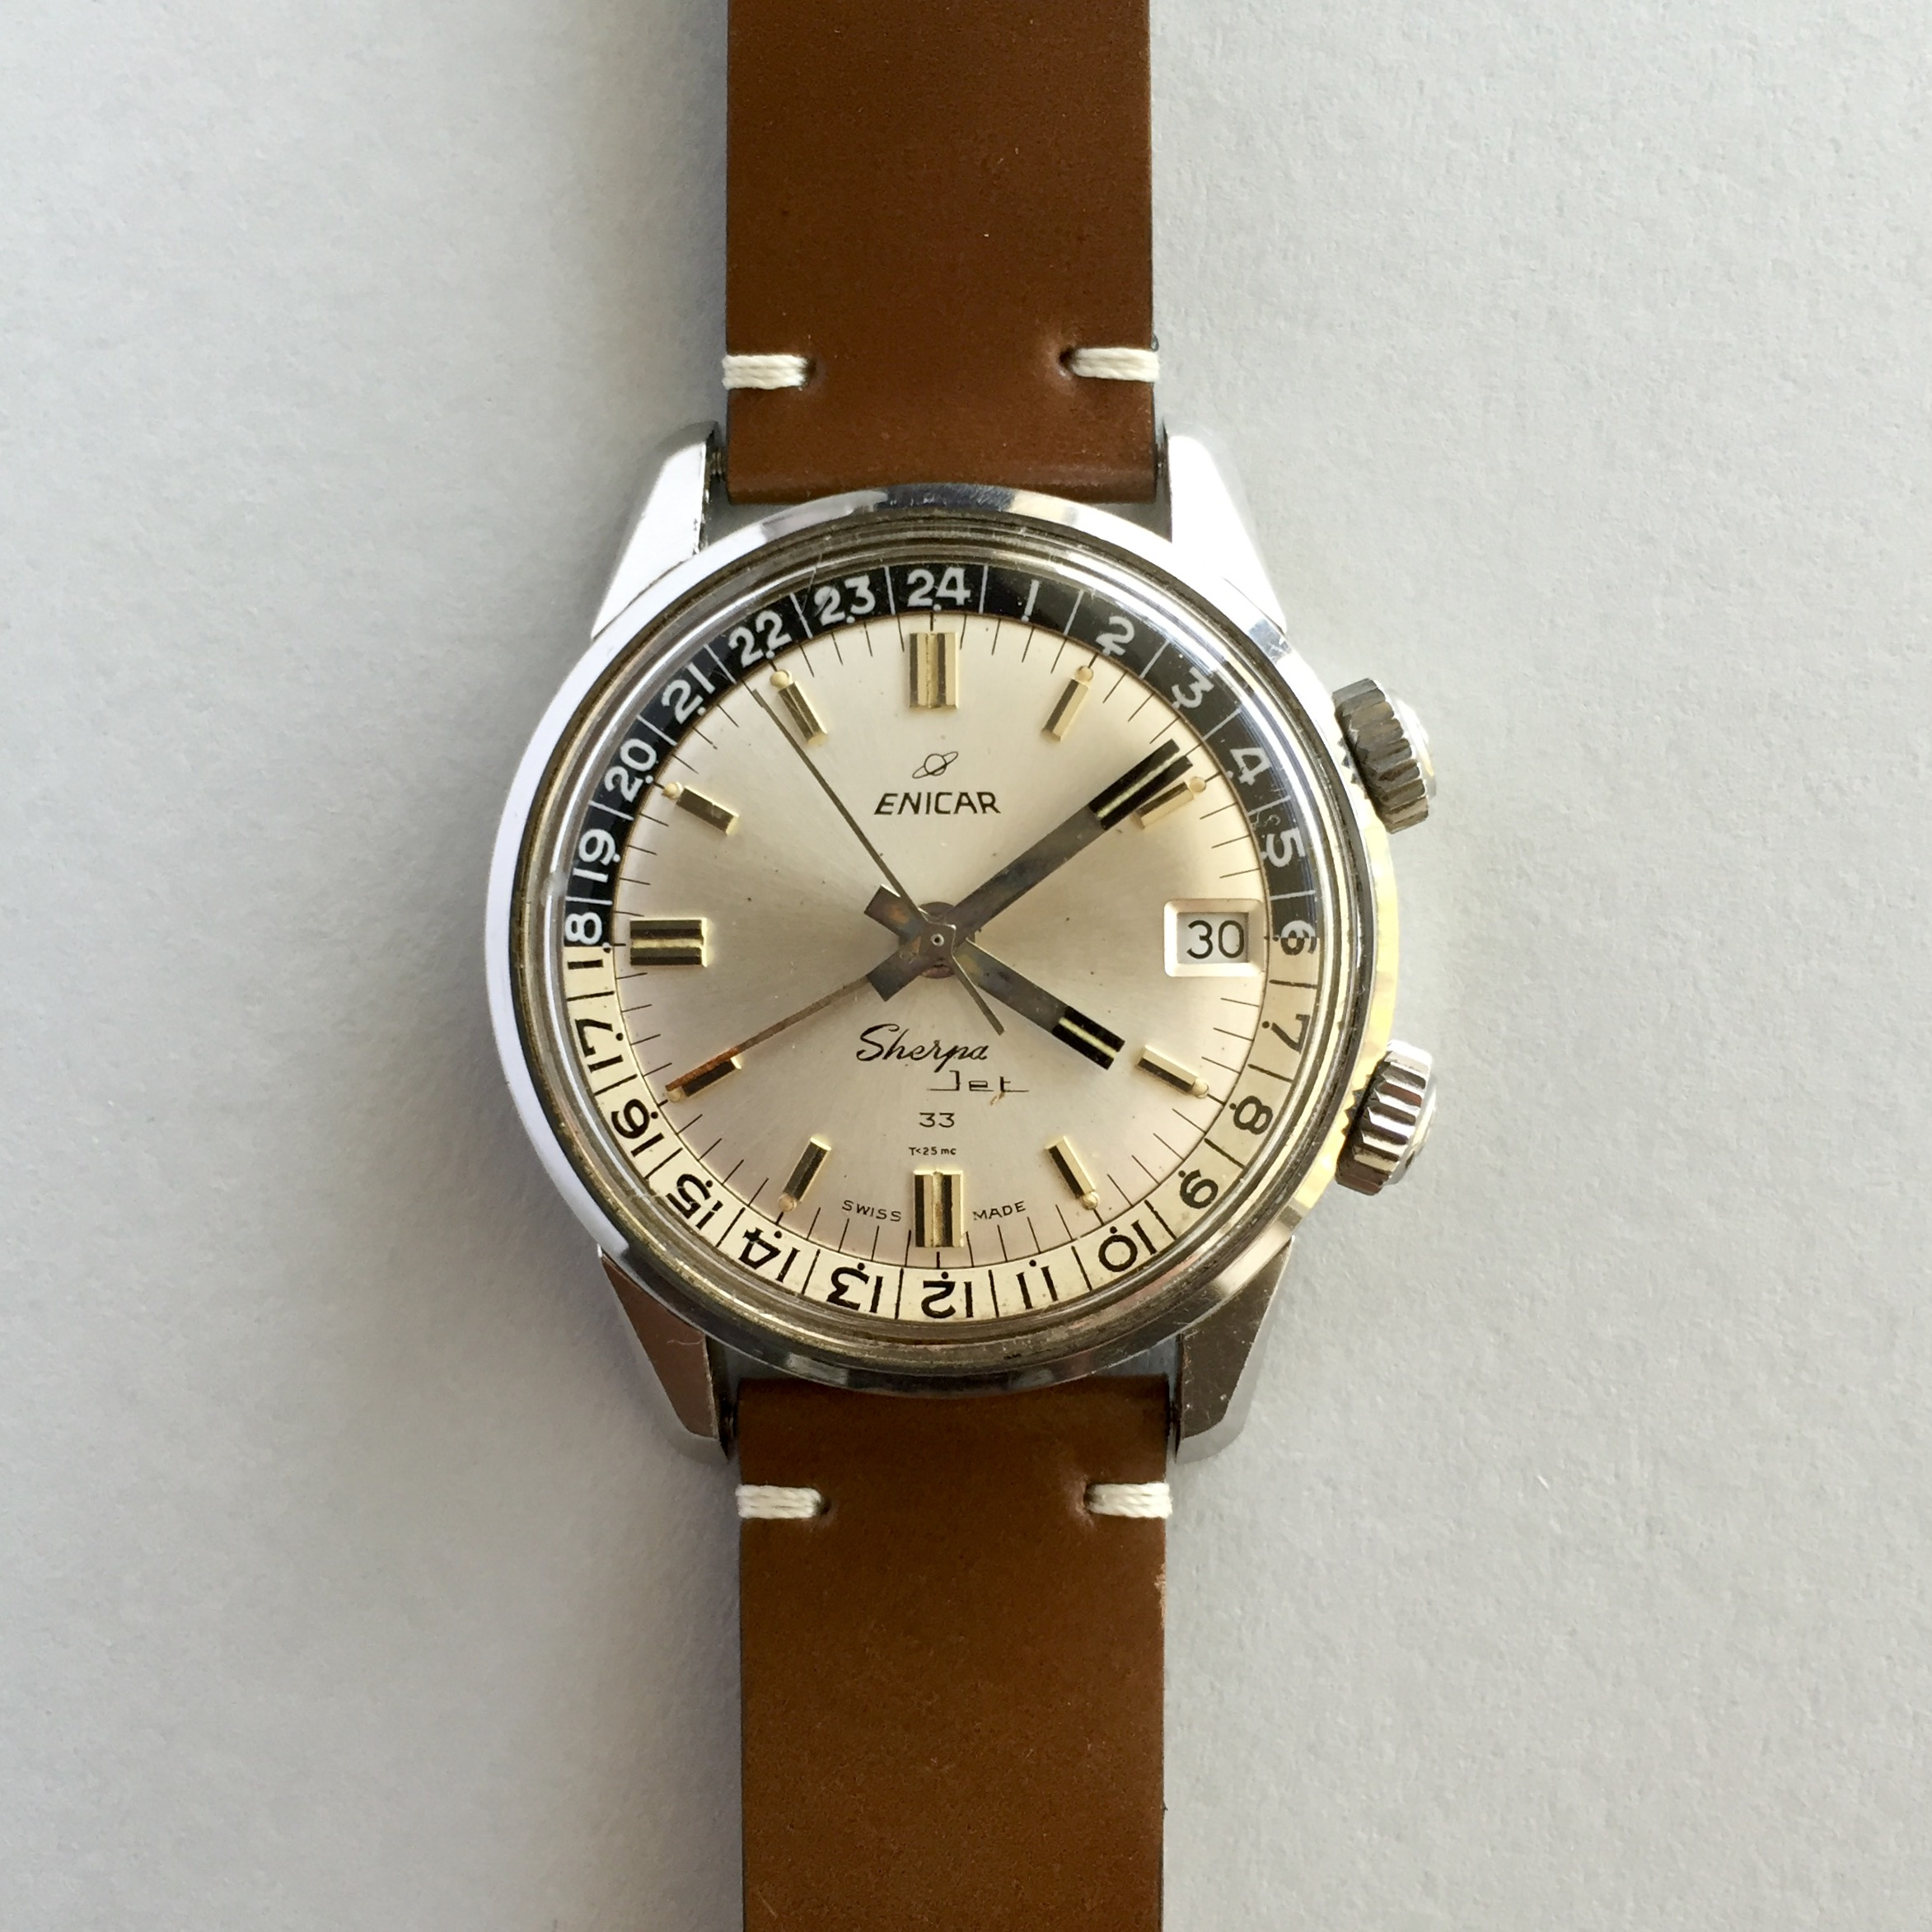 This is the main watch I had in mind with this strap, it brings out the warm patina of the dial so well.